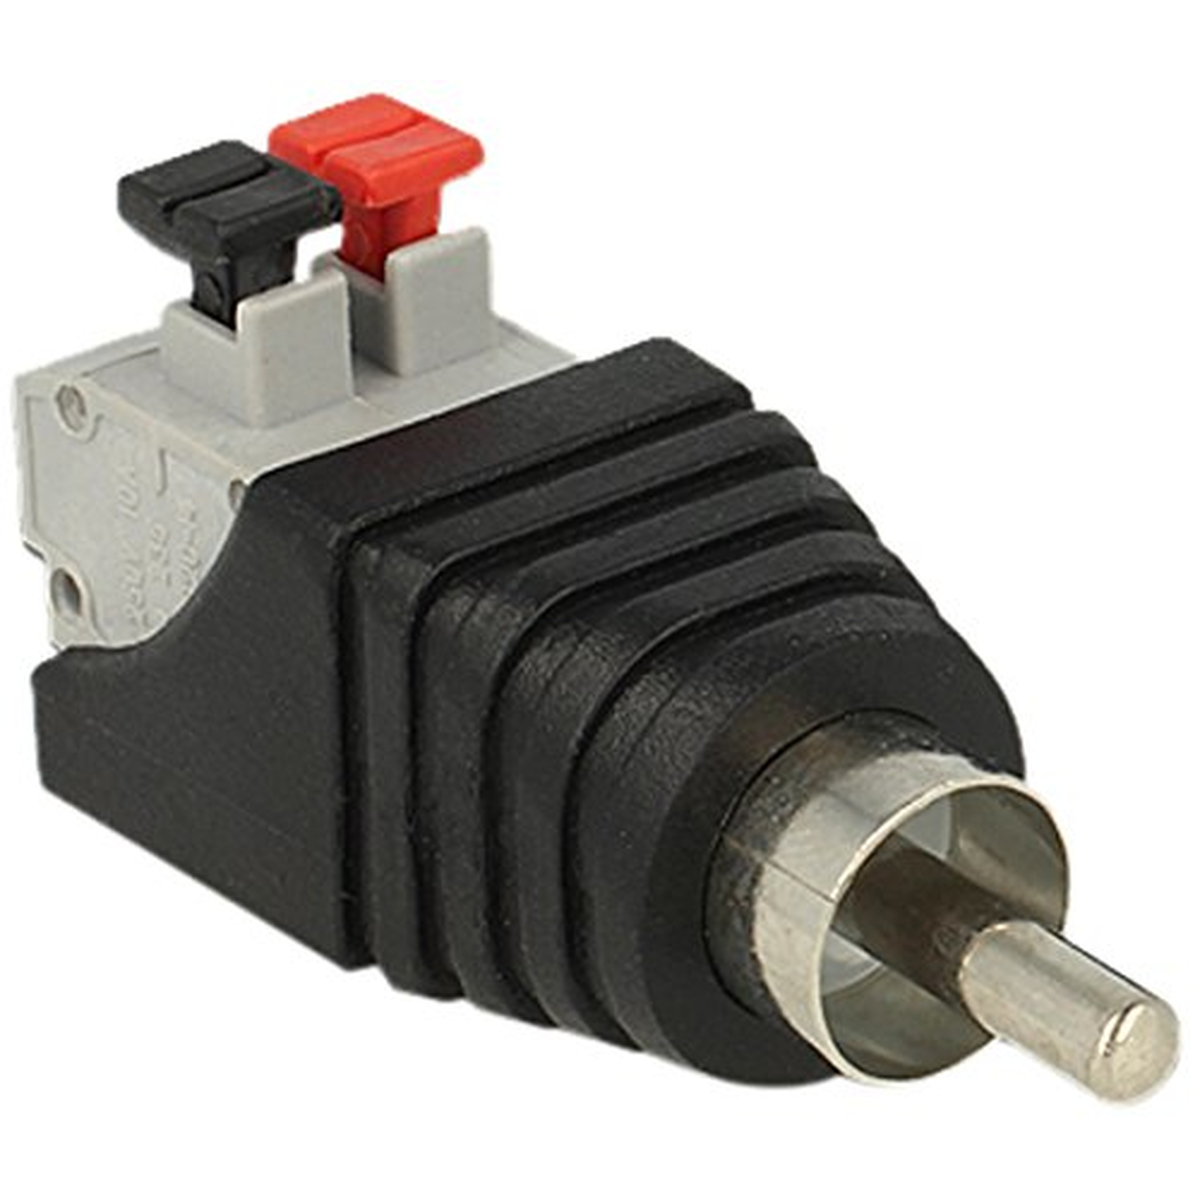 DeLOCK Adapter Terminalblock mit Drucktaste > Cinch Stecker